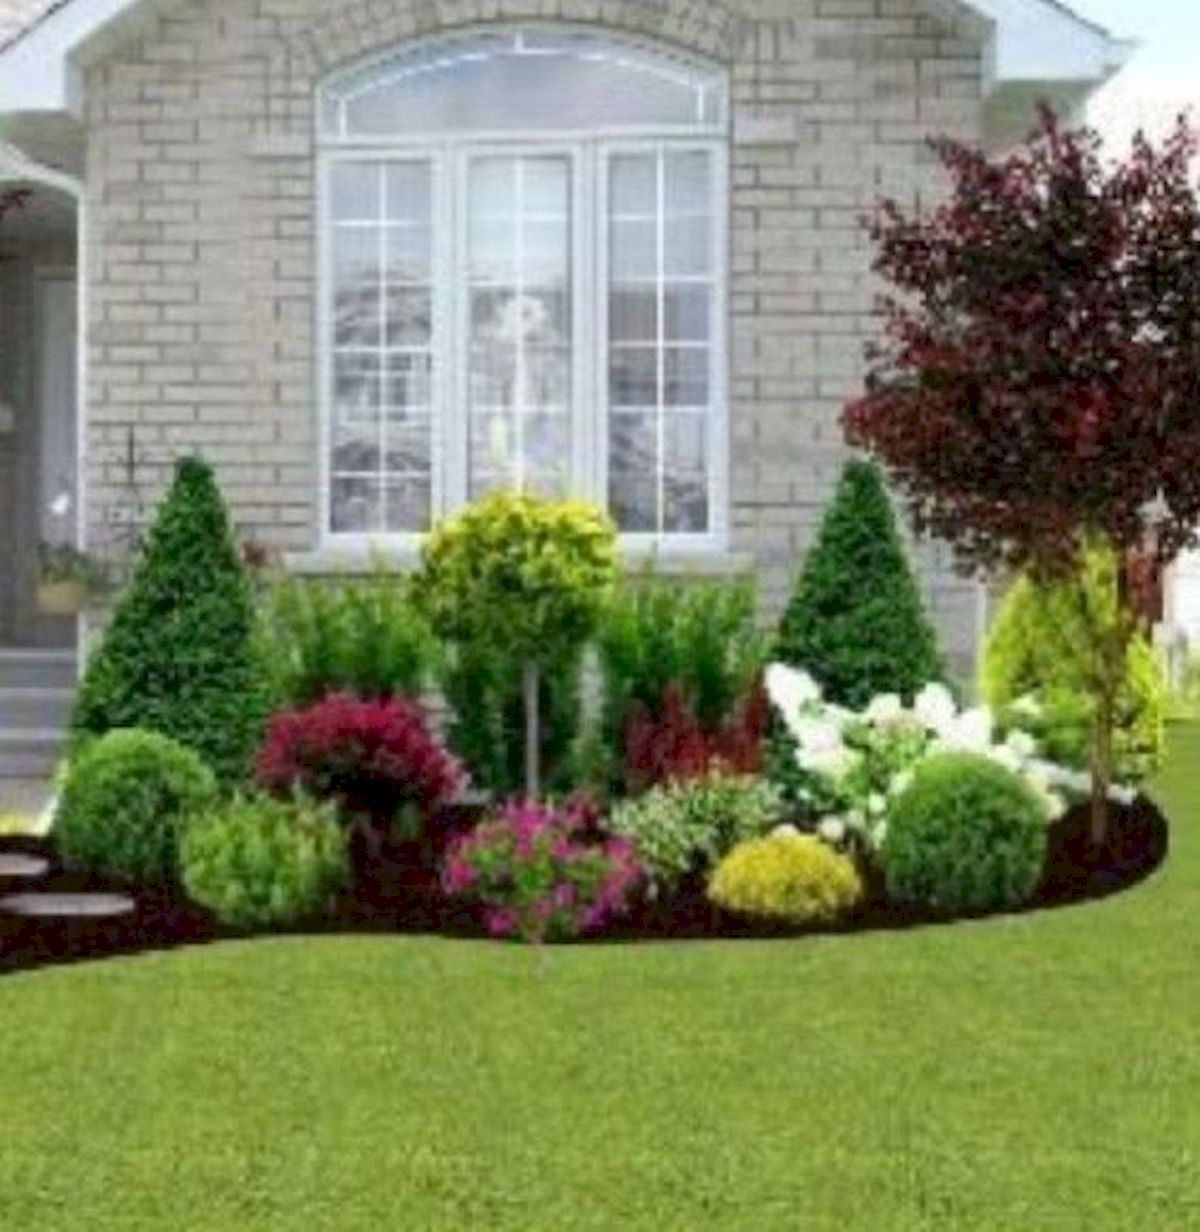 Landscaping Ideas In 2019: 35 Awesome Front Yard Garden Design Ideas